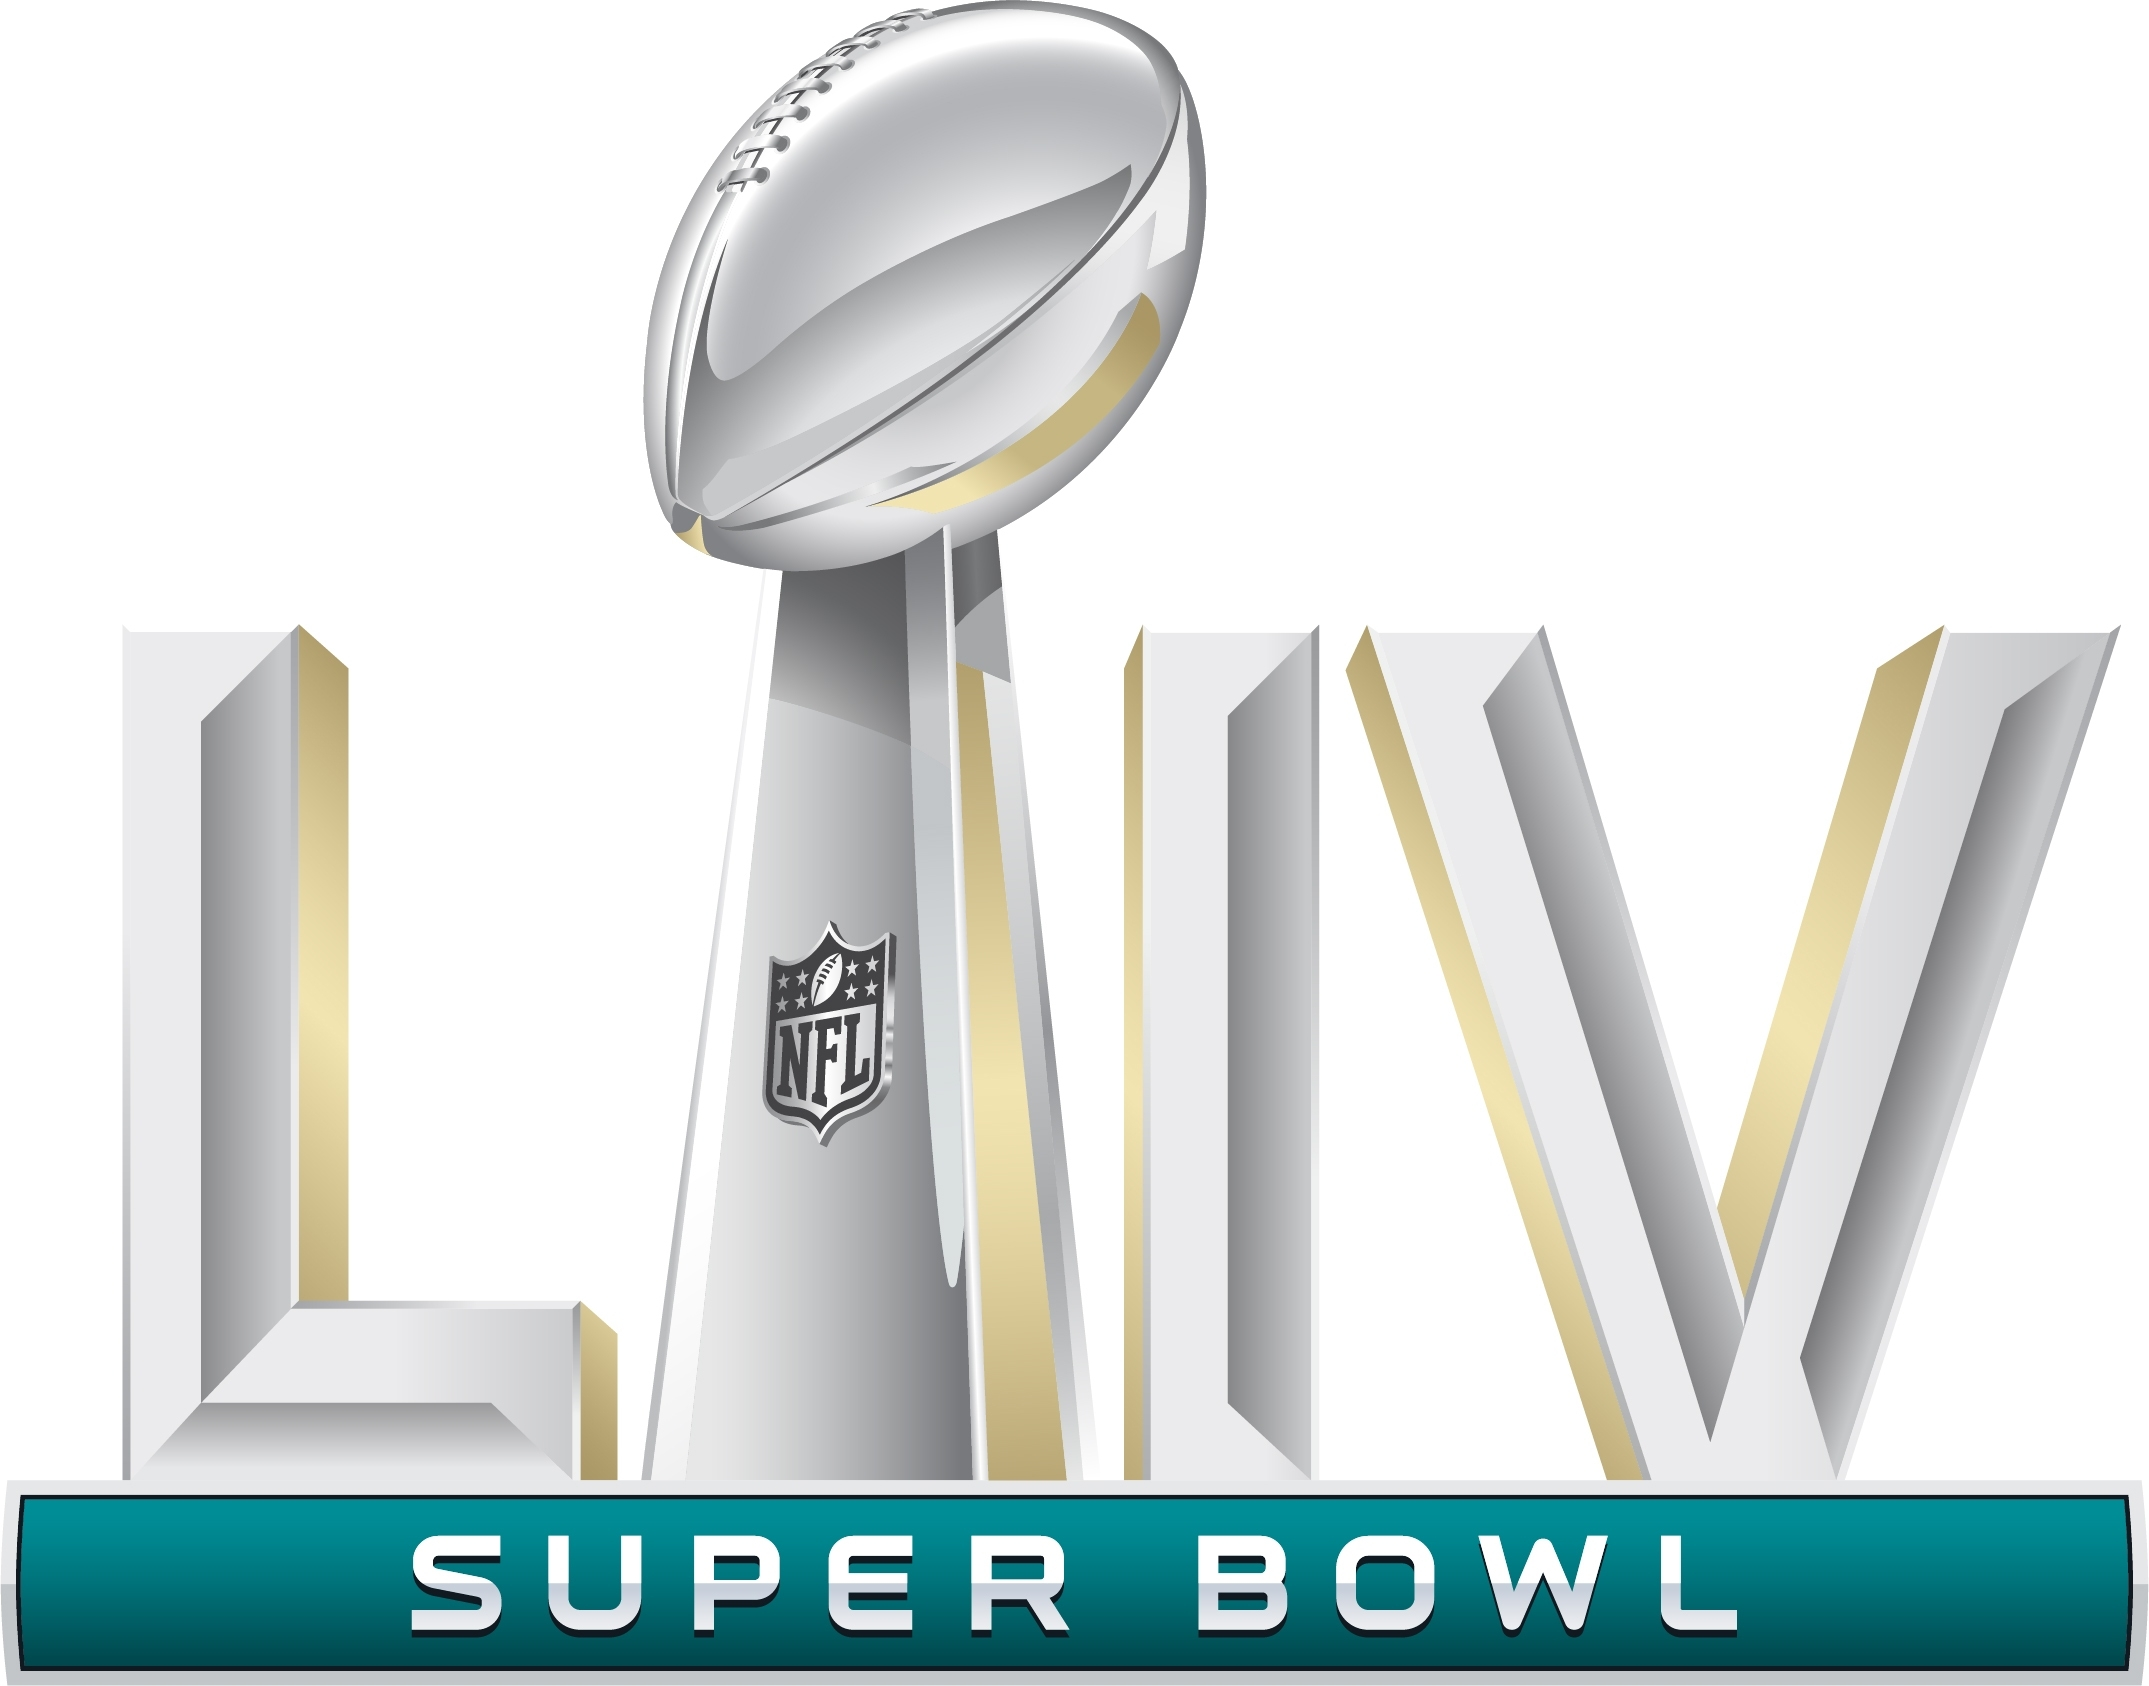 Super Bowl Liv – S.a.f.e. Management pertaining to Super Bowl In Miami Years